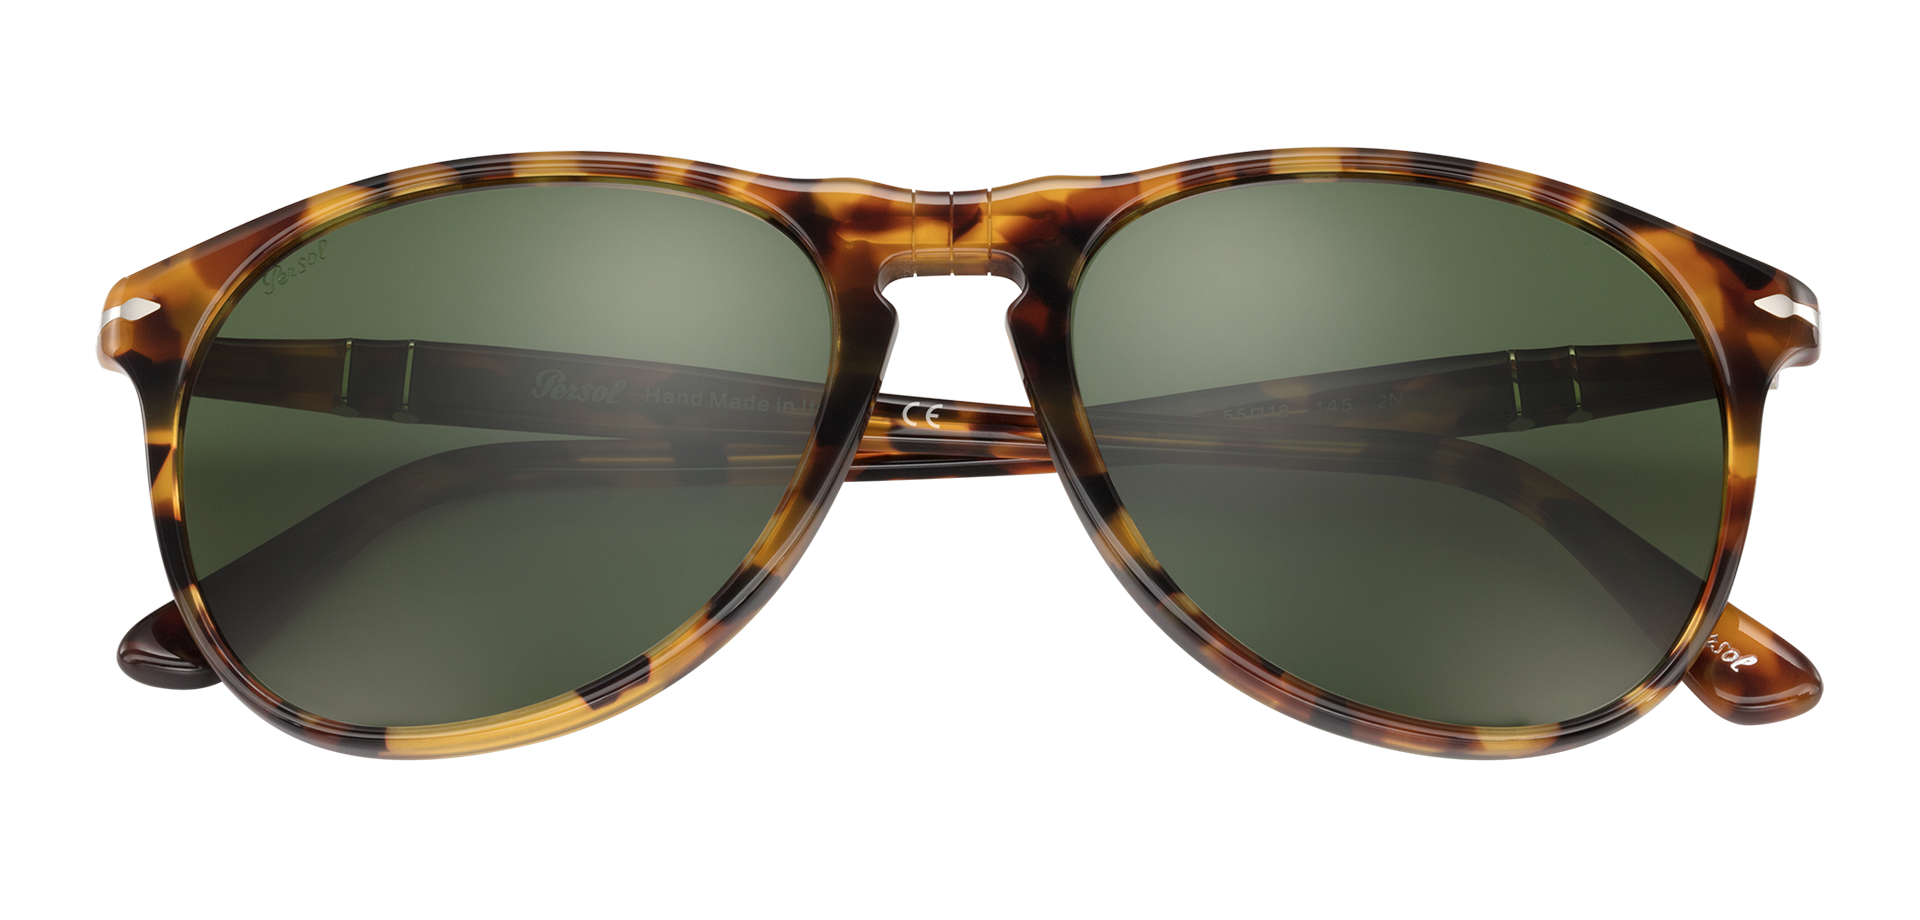 9085bac63ea15 Persol sunglasses